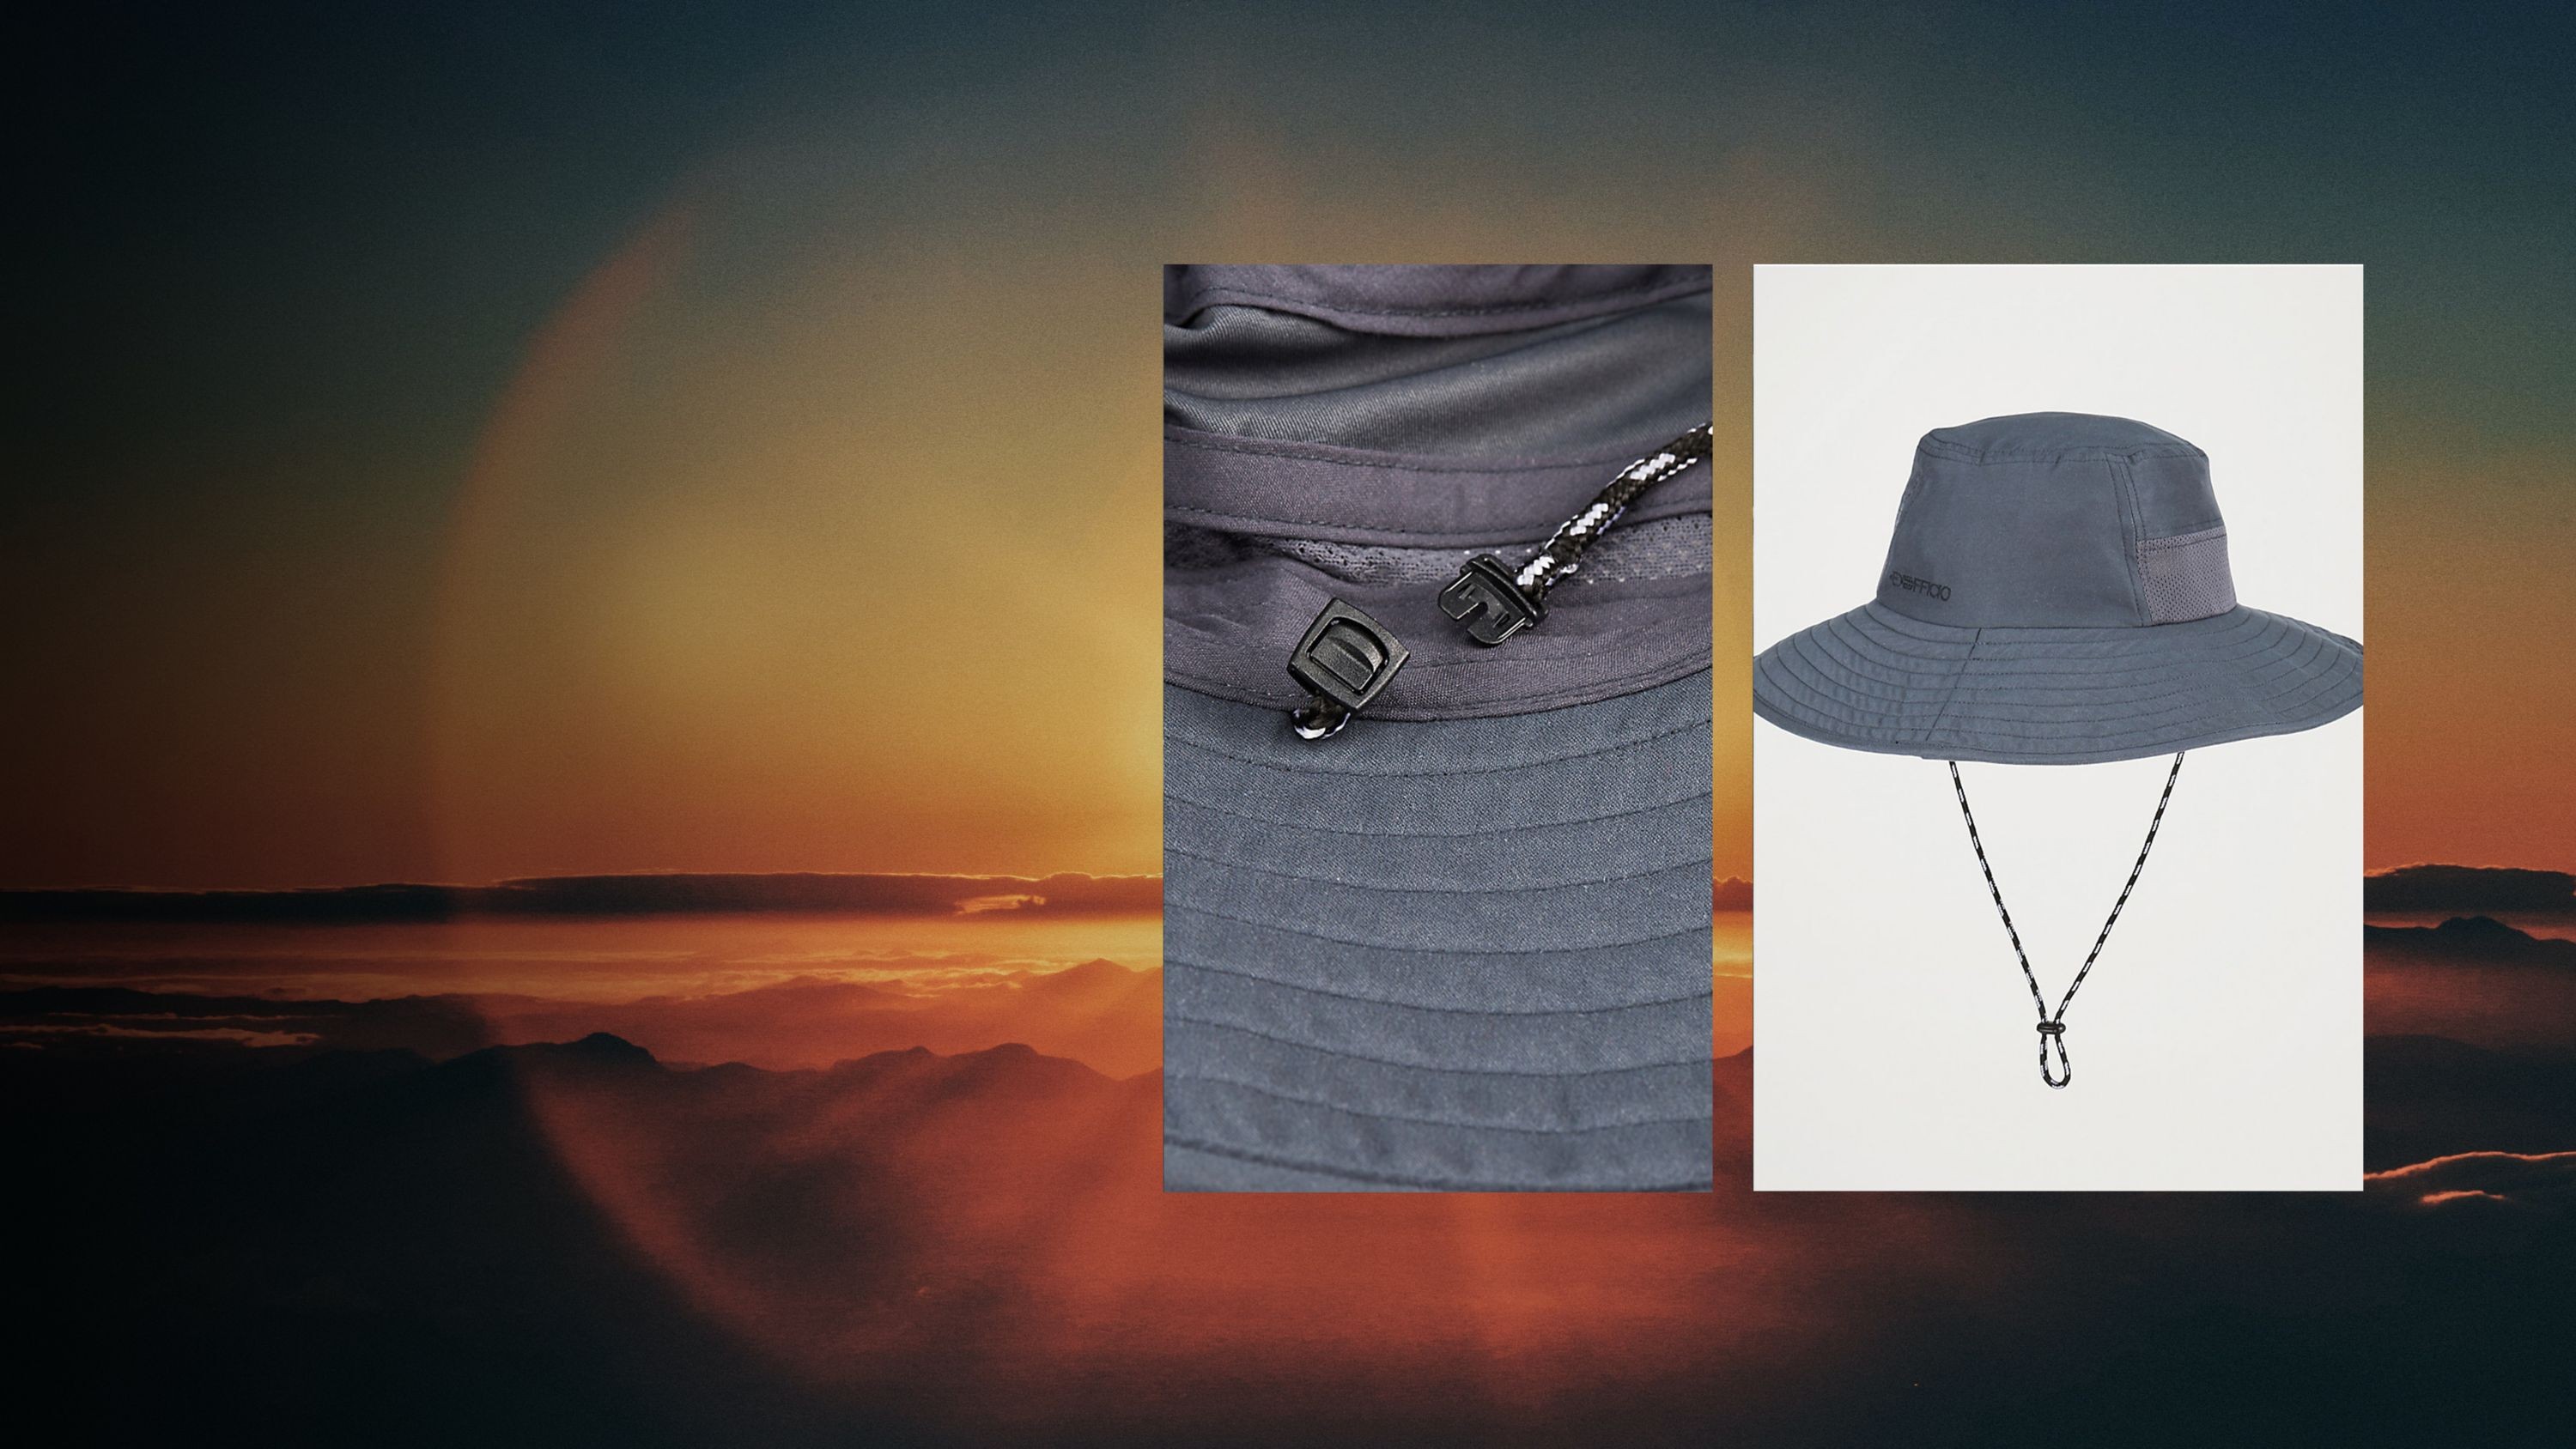 insect repellent & sun protective clothing and hats